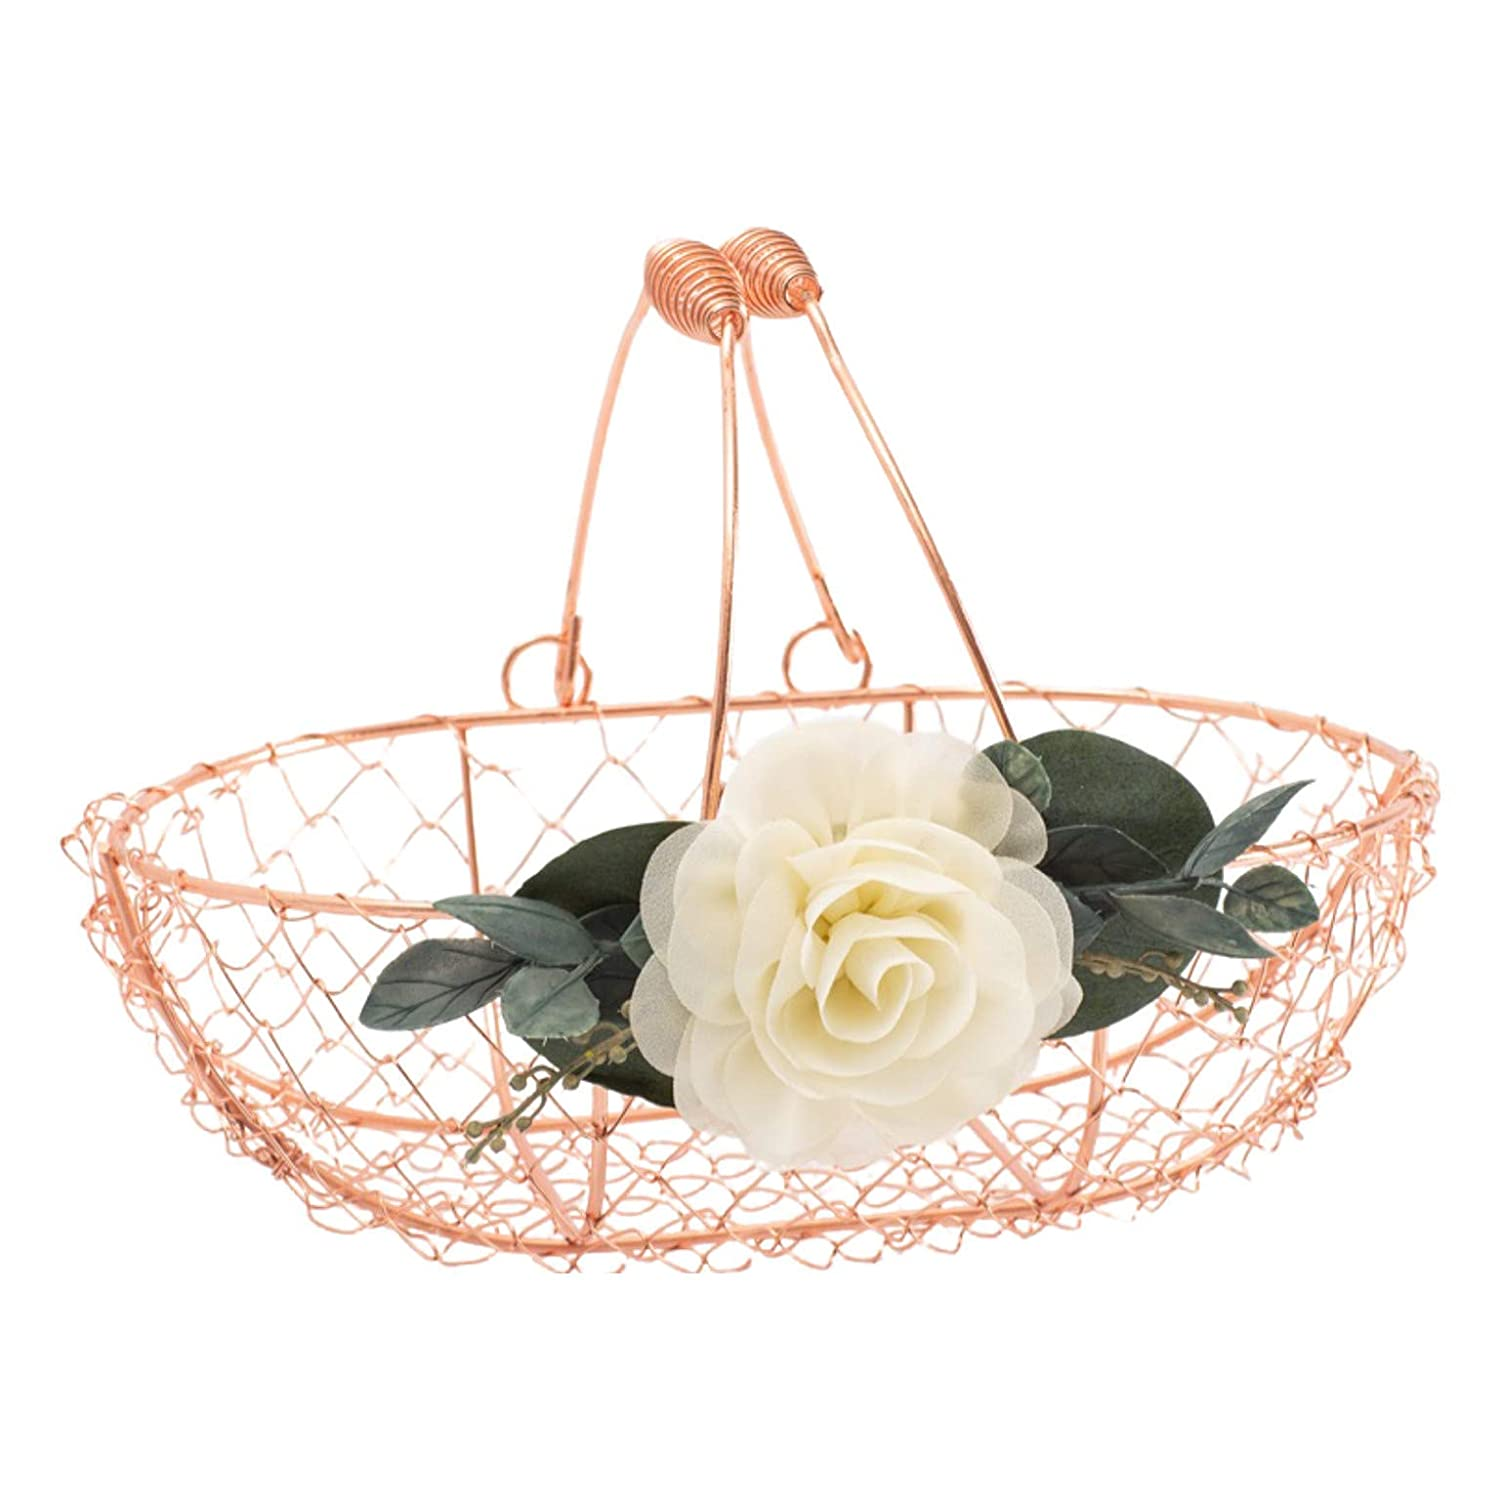 Covered with Lace and Burlap Flower Girl Basket in Grey Galvanized Covered with Lace a 6 Inch Metal Bucket Perfect for Rose Petals